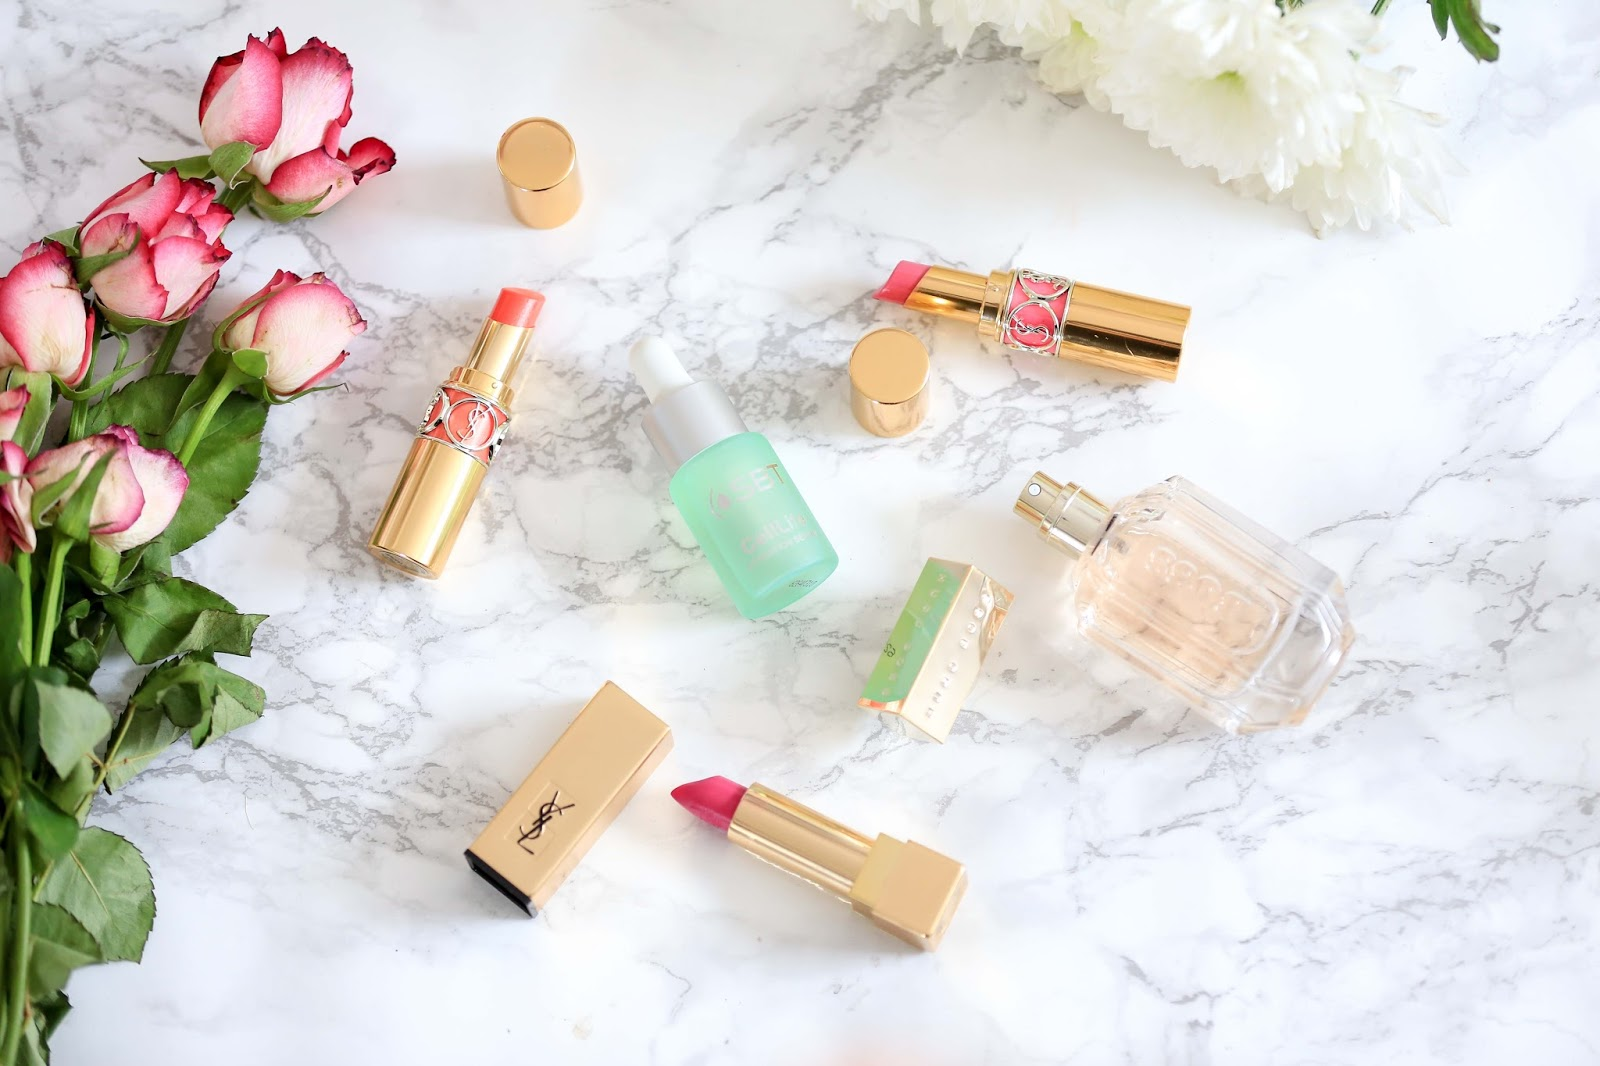 Deutsche Fashionblogger - Deutsche Beauty Blogger Fashionstylebyjohanna-Beautypost-Beautyblogger-Blogger aus Frankfurt -YSL-YSL Lippenstift- pinker Lippenstift-Pinkpeonies Lippenstift-Lipstik PinkPeaonies